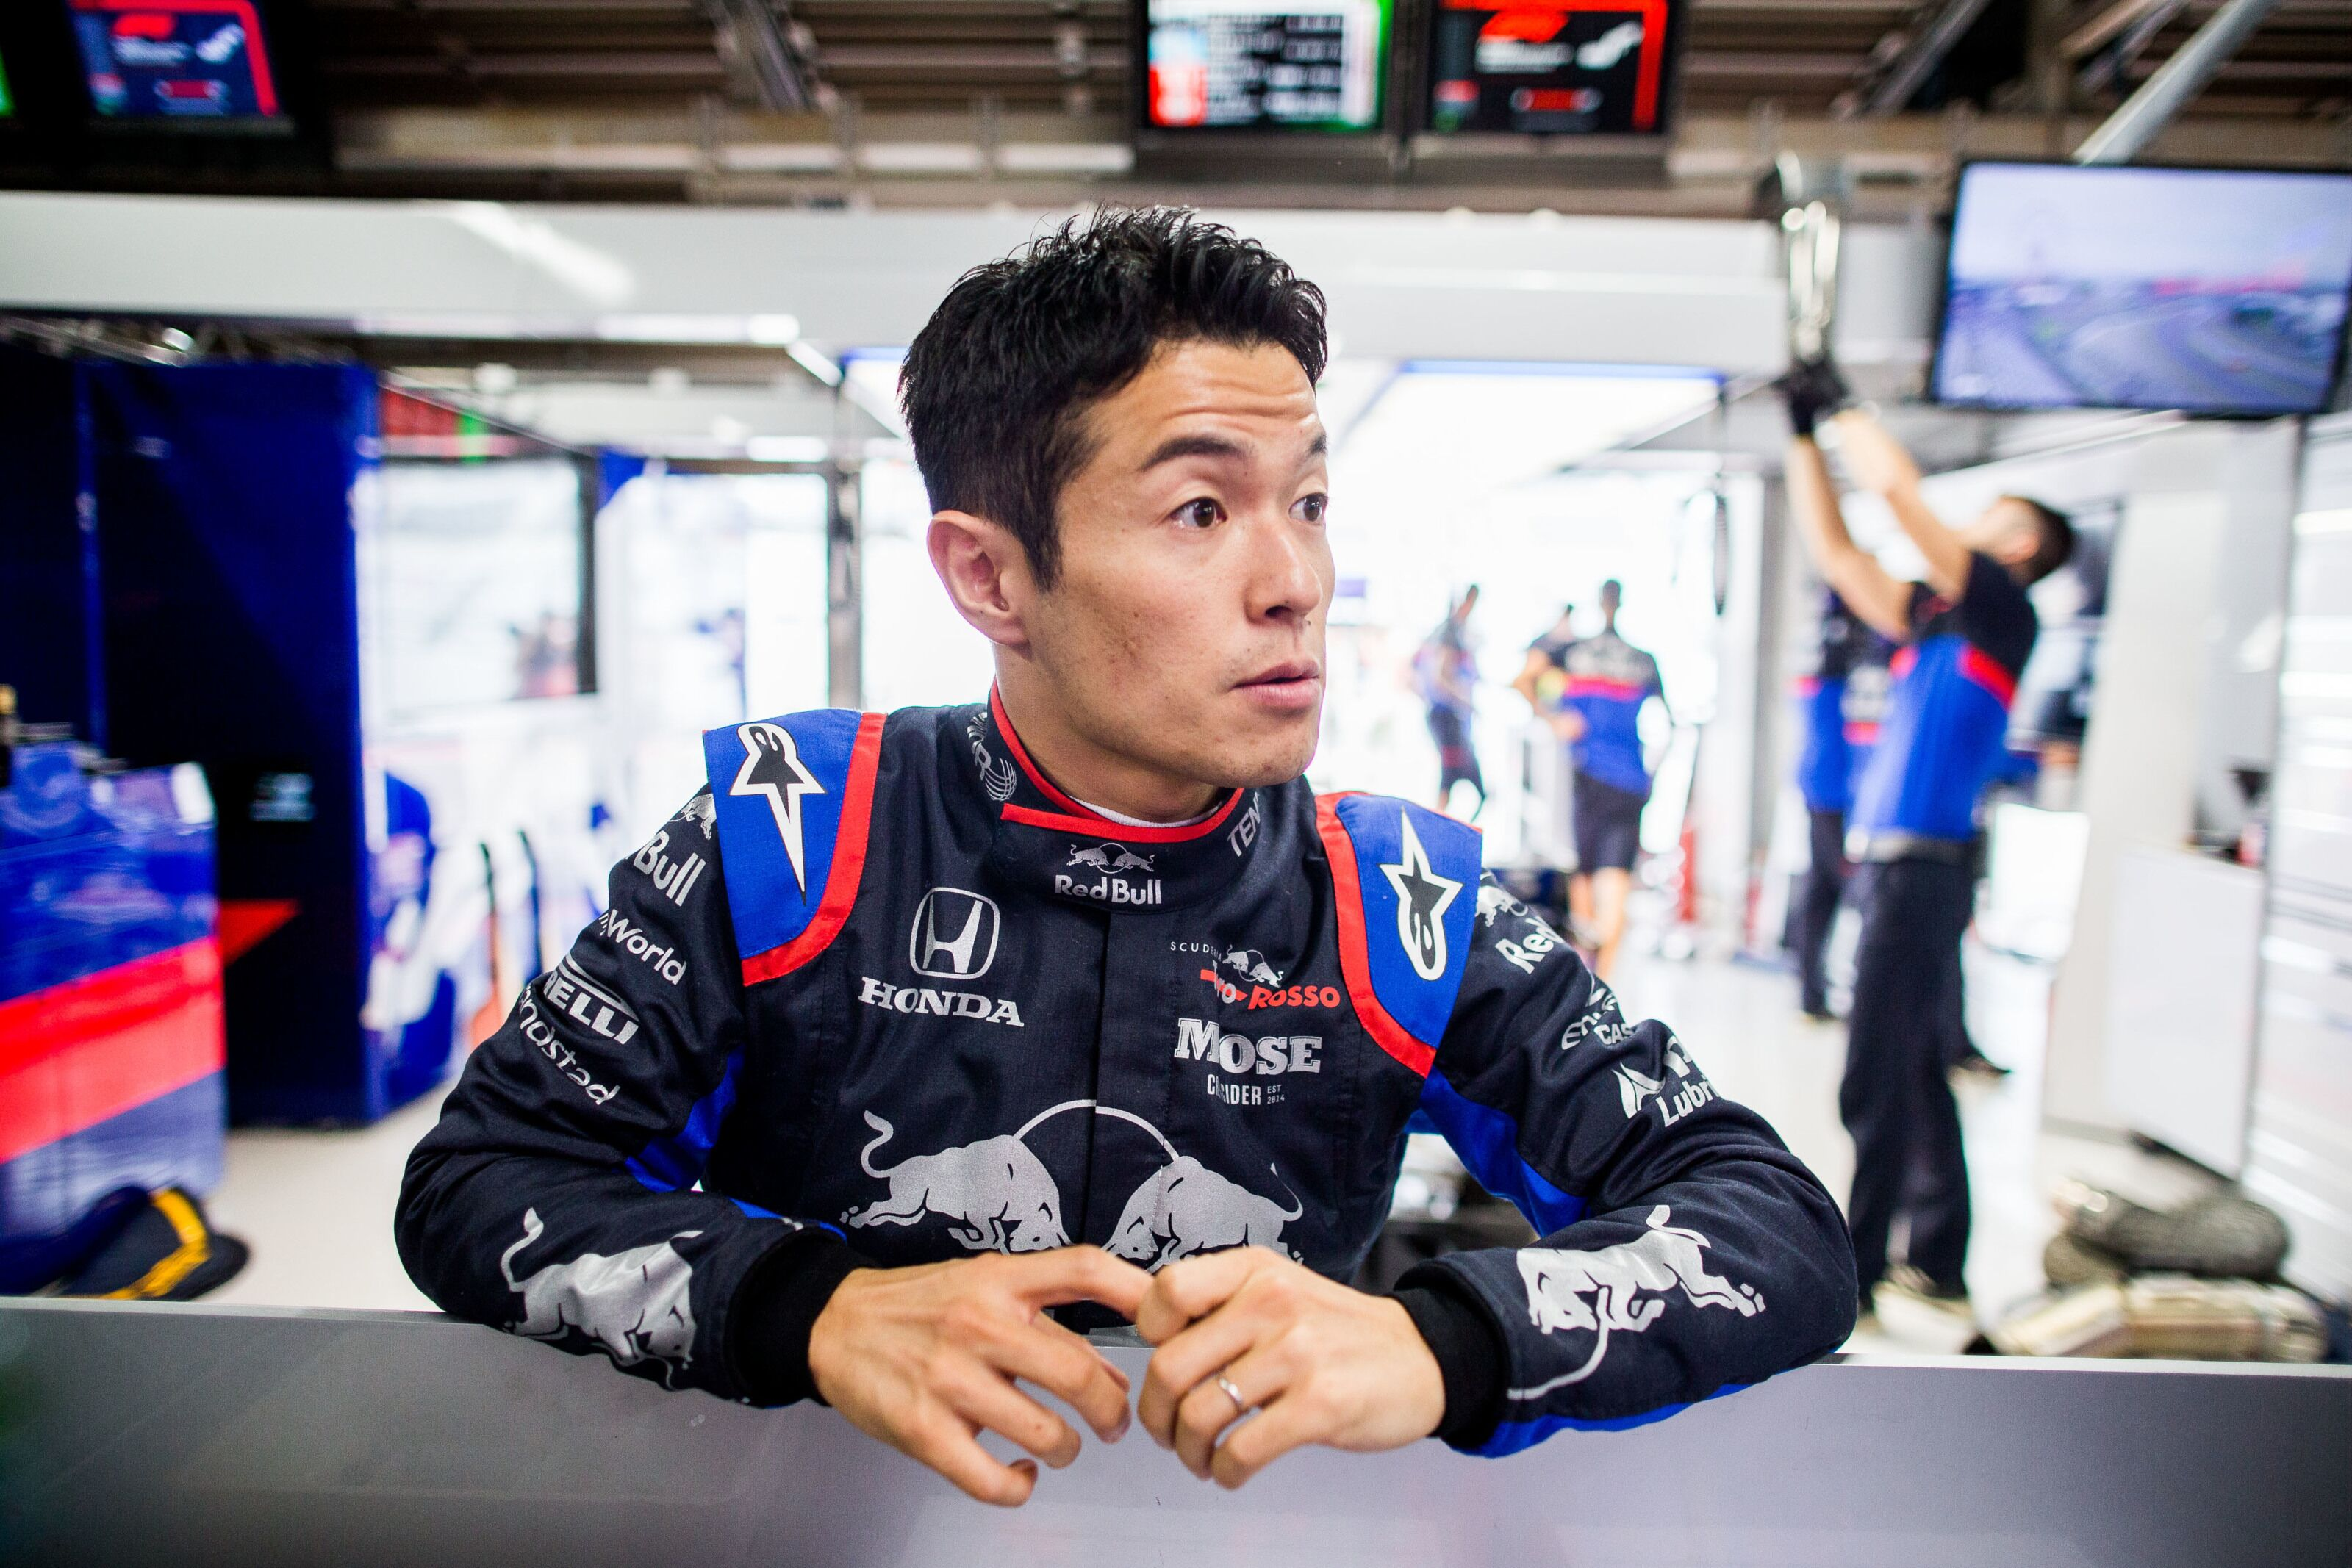 Formula 1: Naoki Yamamoto not in contention for 2020 Toro Rosso seat